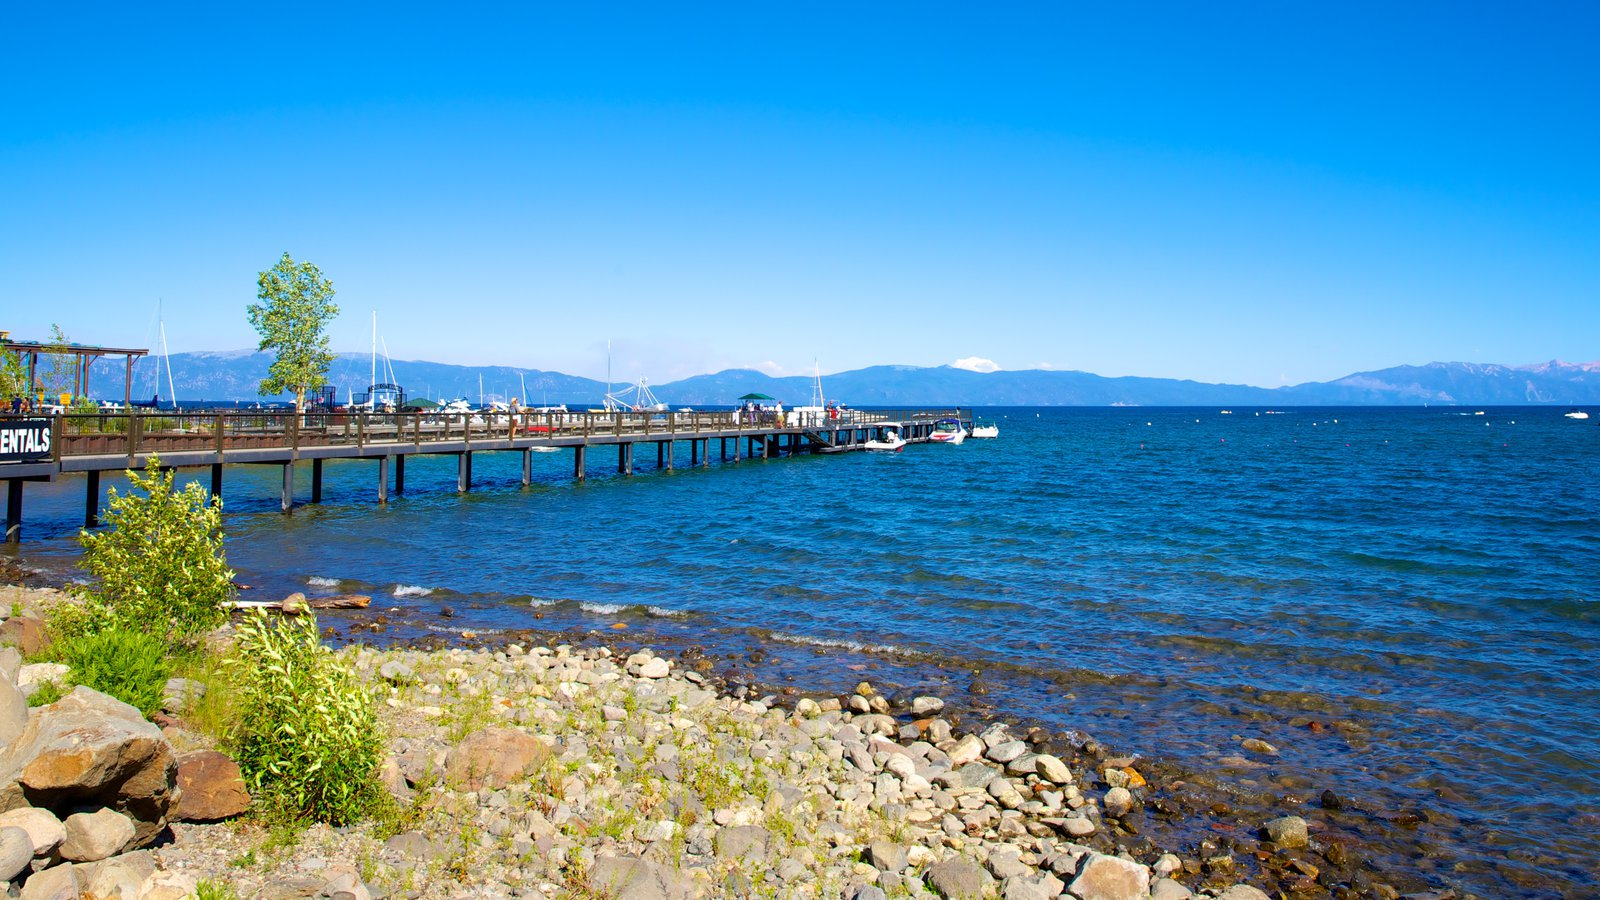 Tahoe City which includes a bay or harbor, general coastal views and landscape views